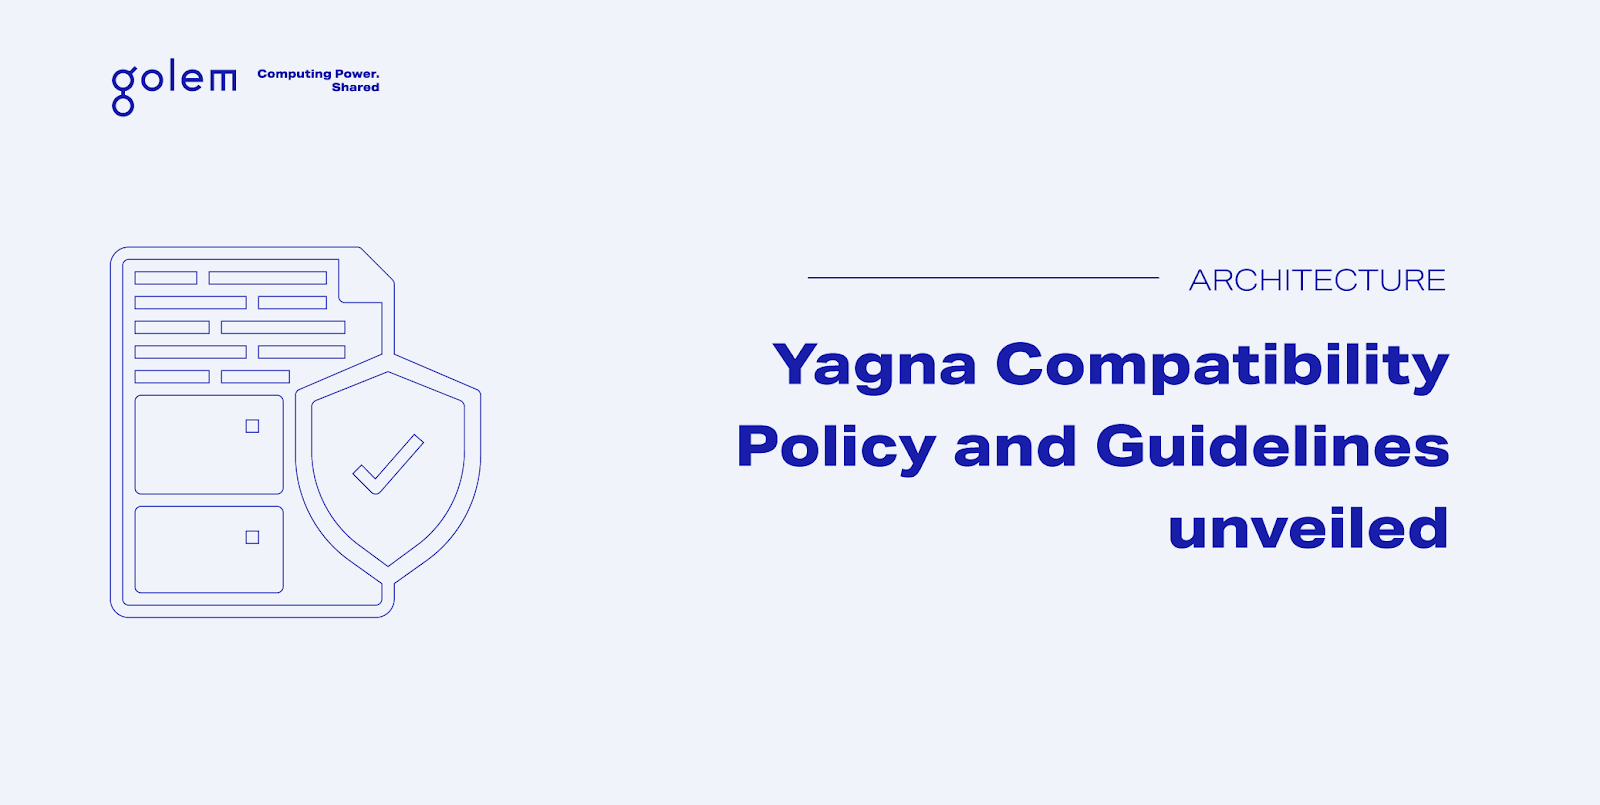 Yagna Compatibility Policy and Guidelines unveiled